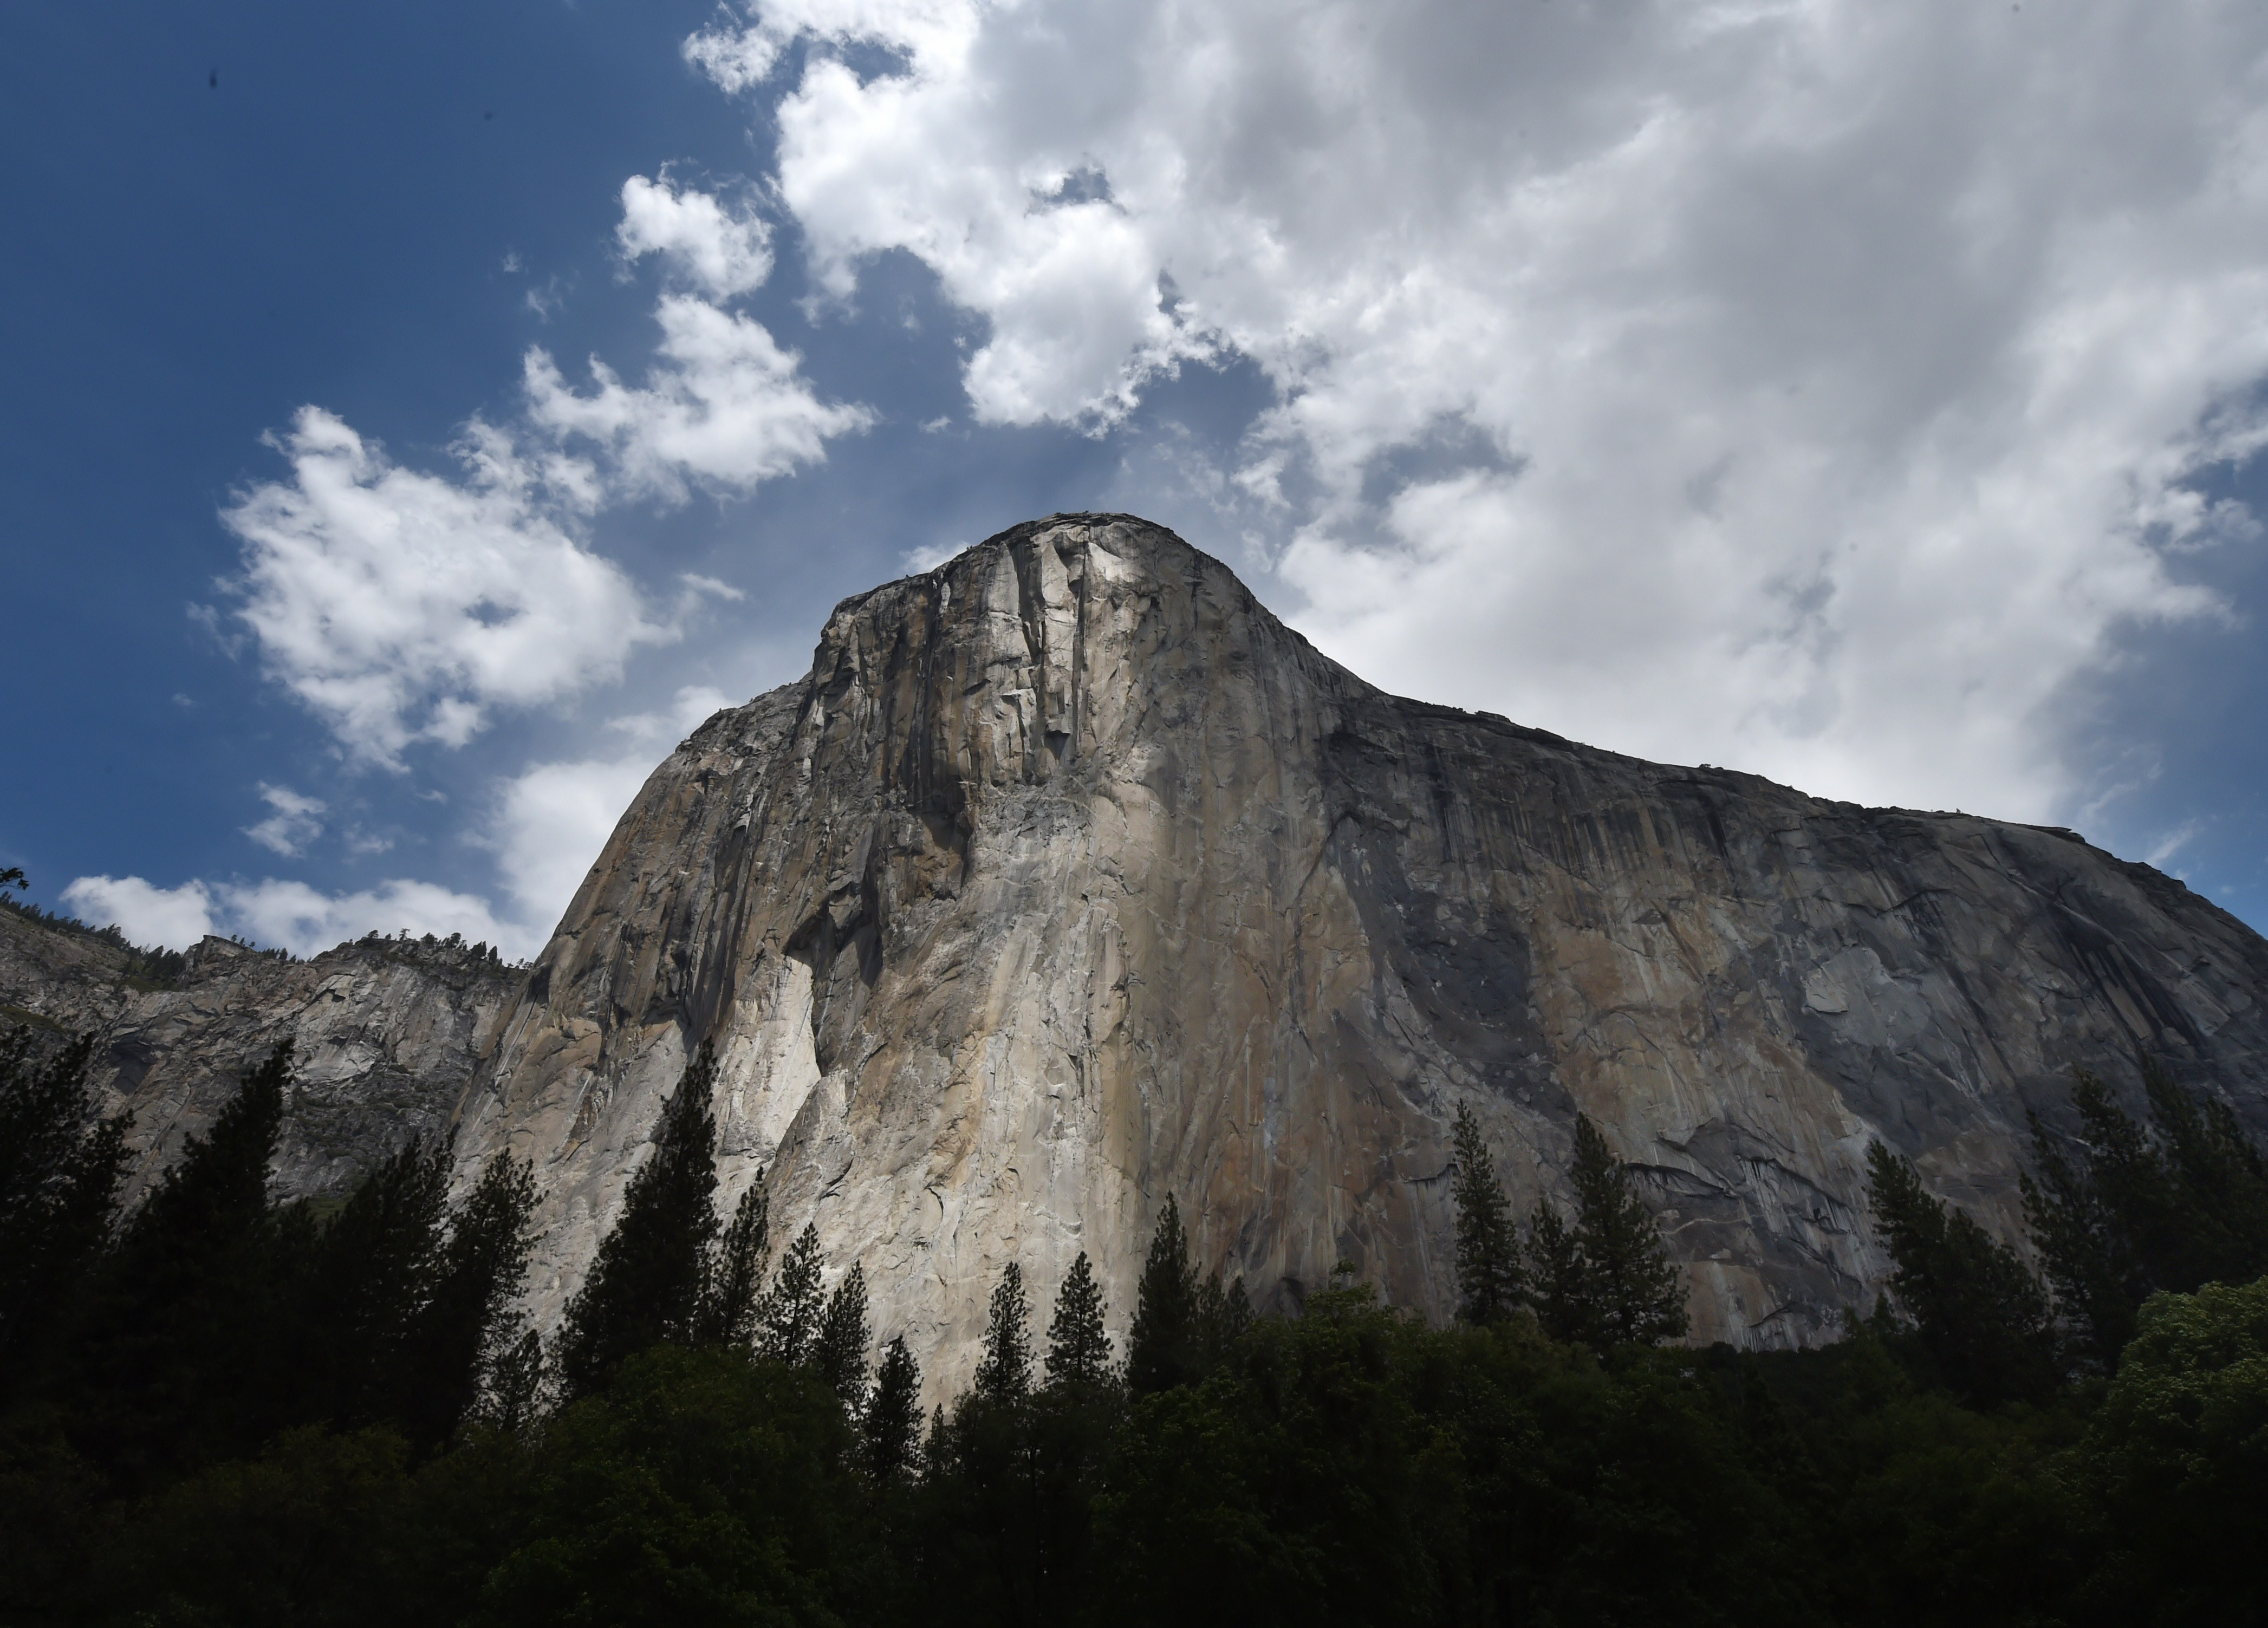 The El Capitan monolith in the Yosemite National Park in California on June 4, 2015.